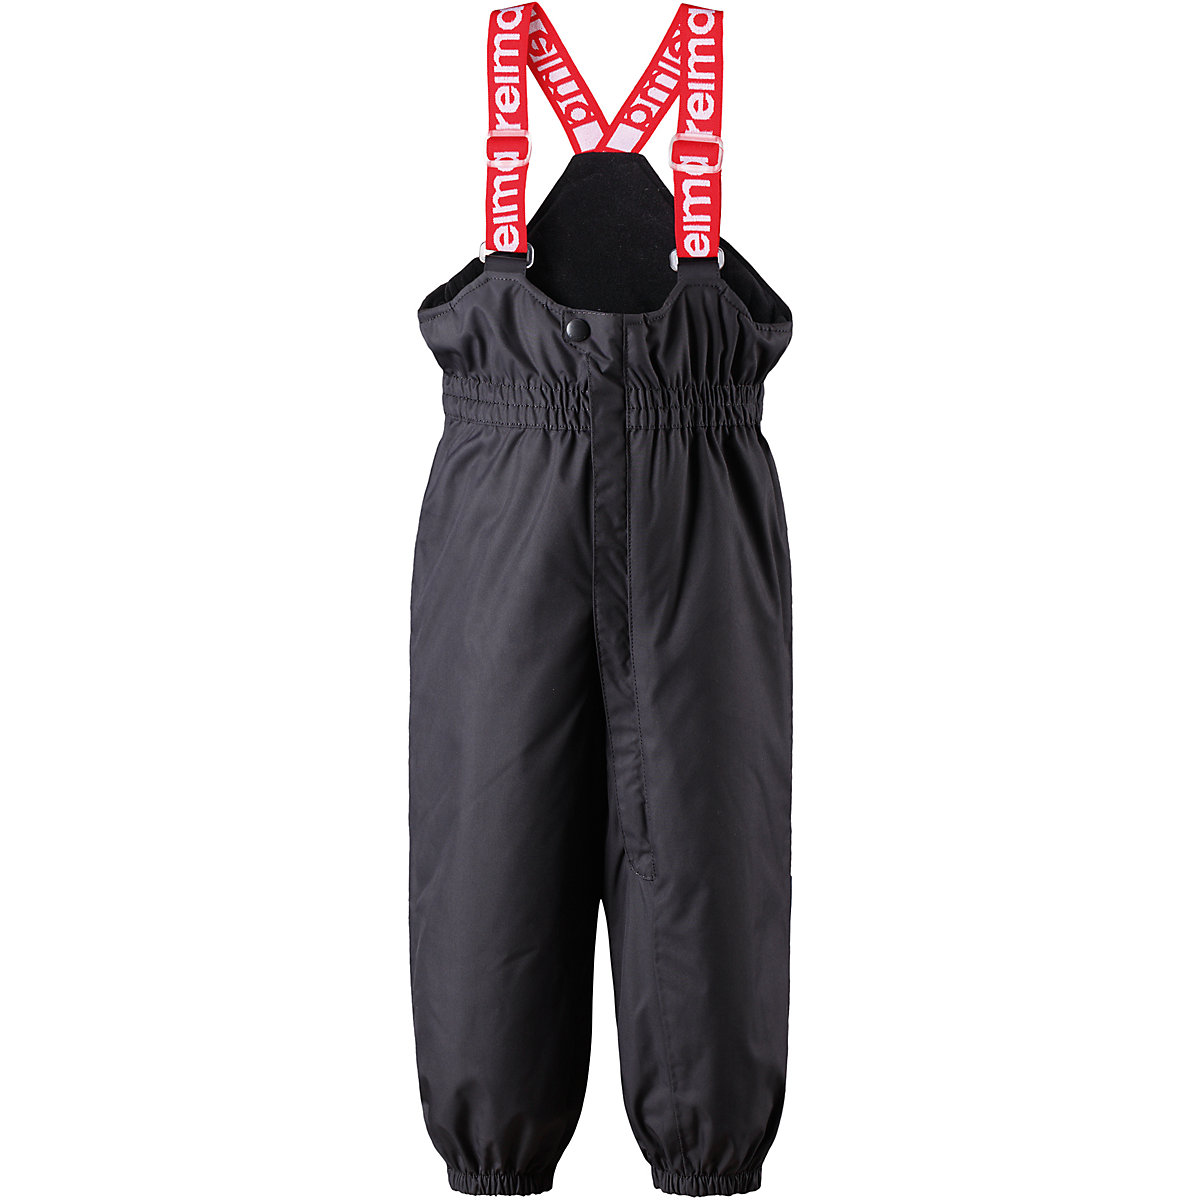 Pants & Capris Reima 8689072 for boys and girls polyester autumn winter monton 113129289 outdoor cycling polyester short pants for men black l